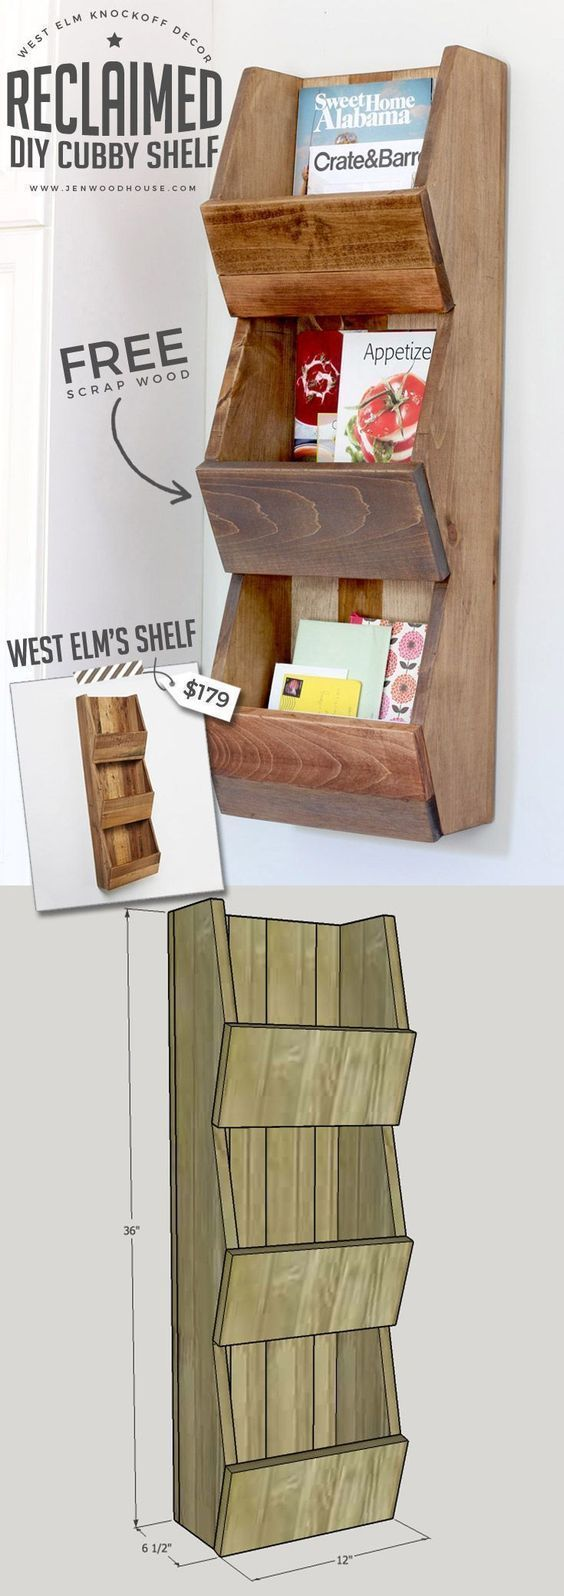 4 easy woodworking plans for beginners to learn on useful diy wood project ideas beginner woodworking plans id=37614